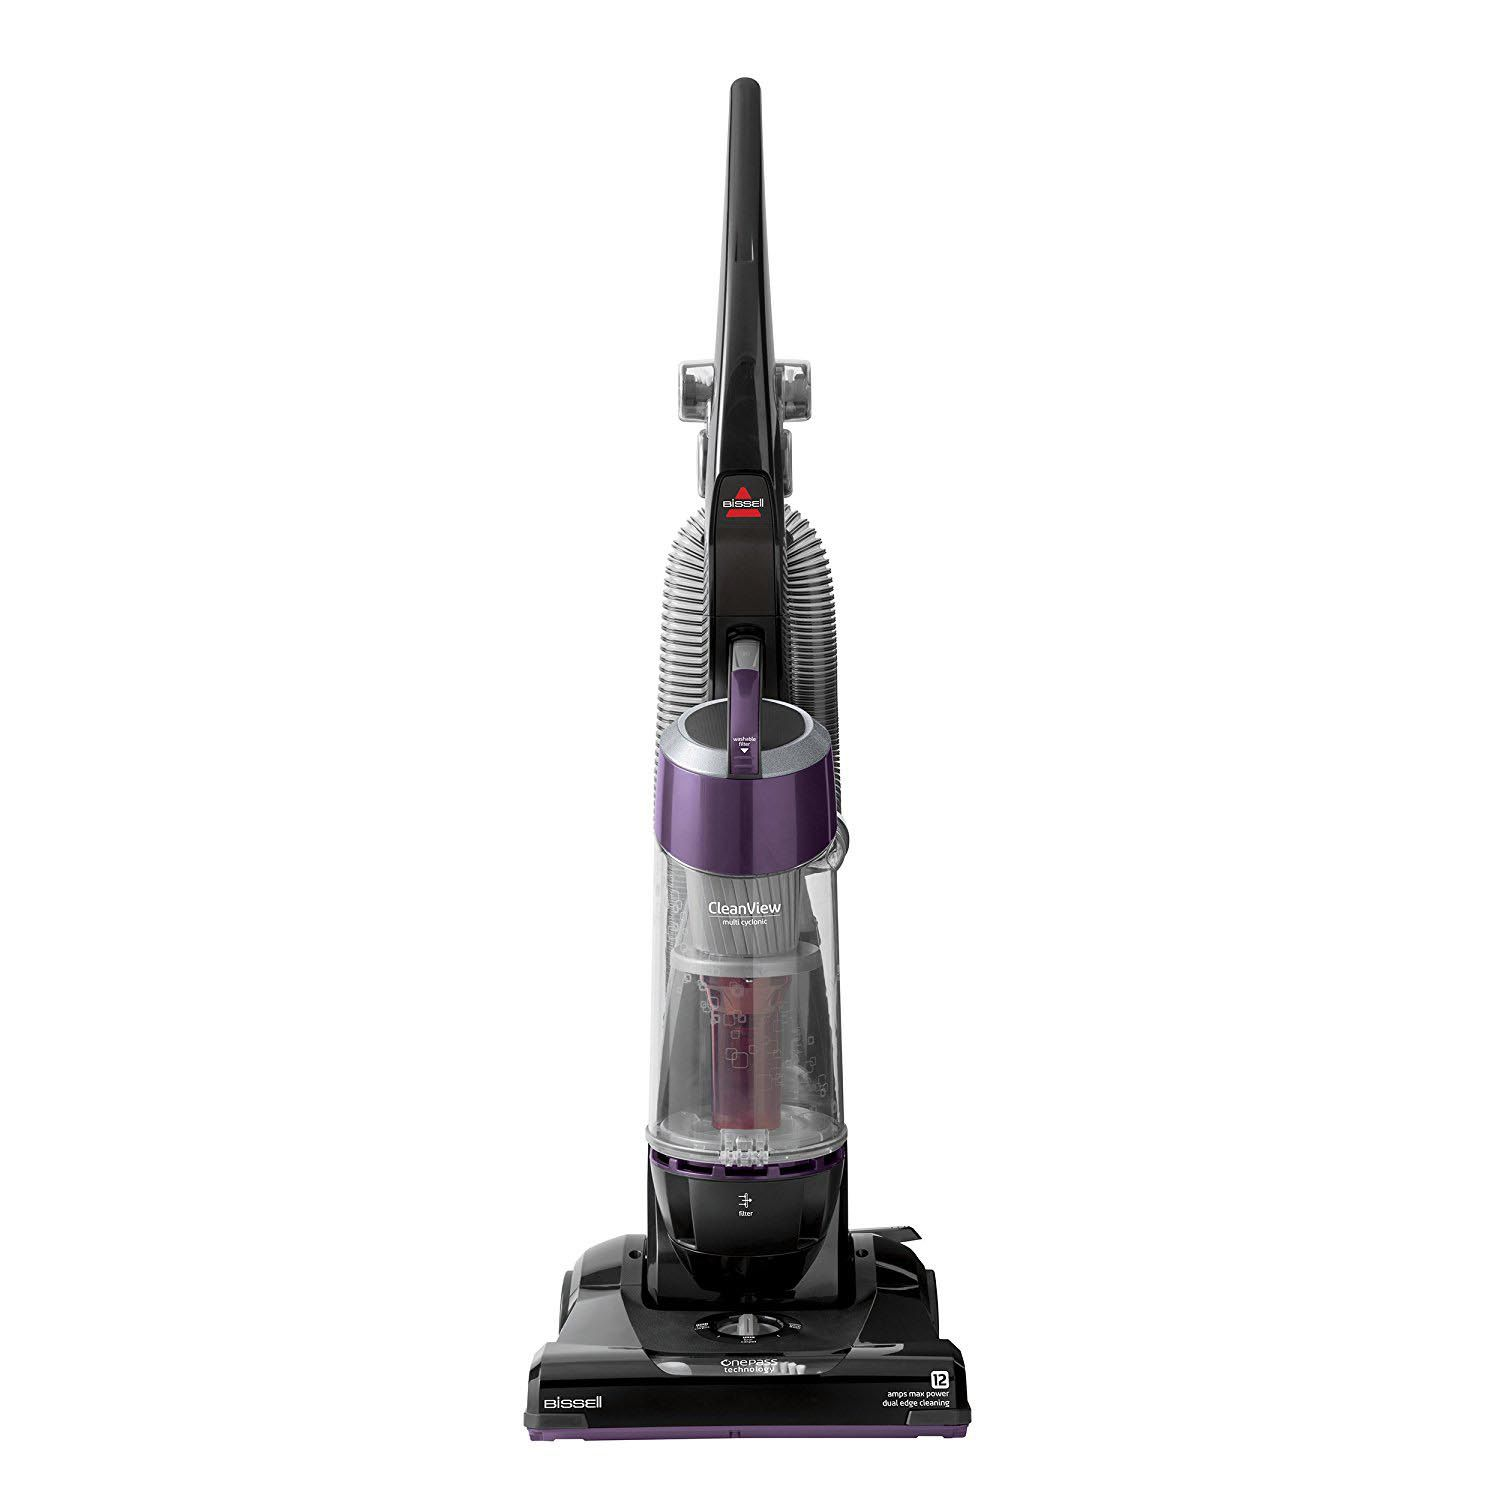 steamvac hoover by haushalt cleaner clean with k rug surge rental dp carpet che amazon de